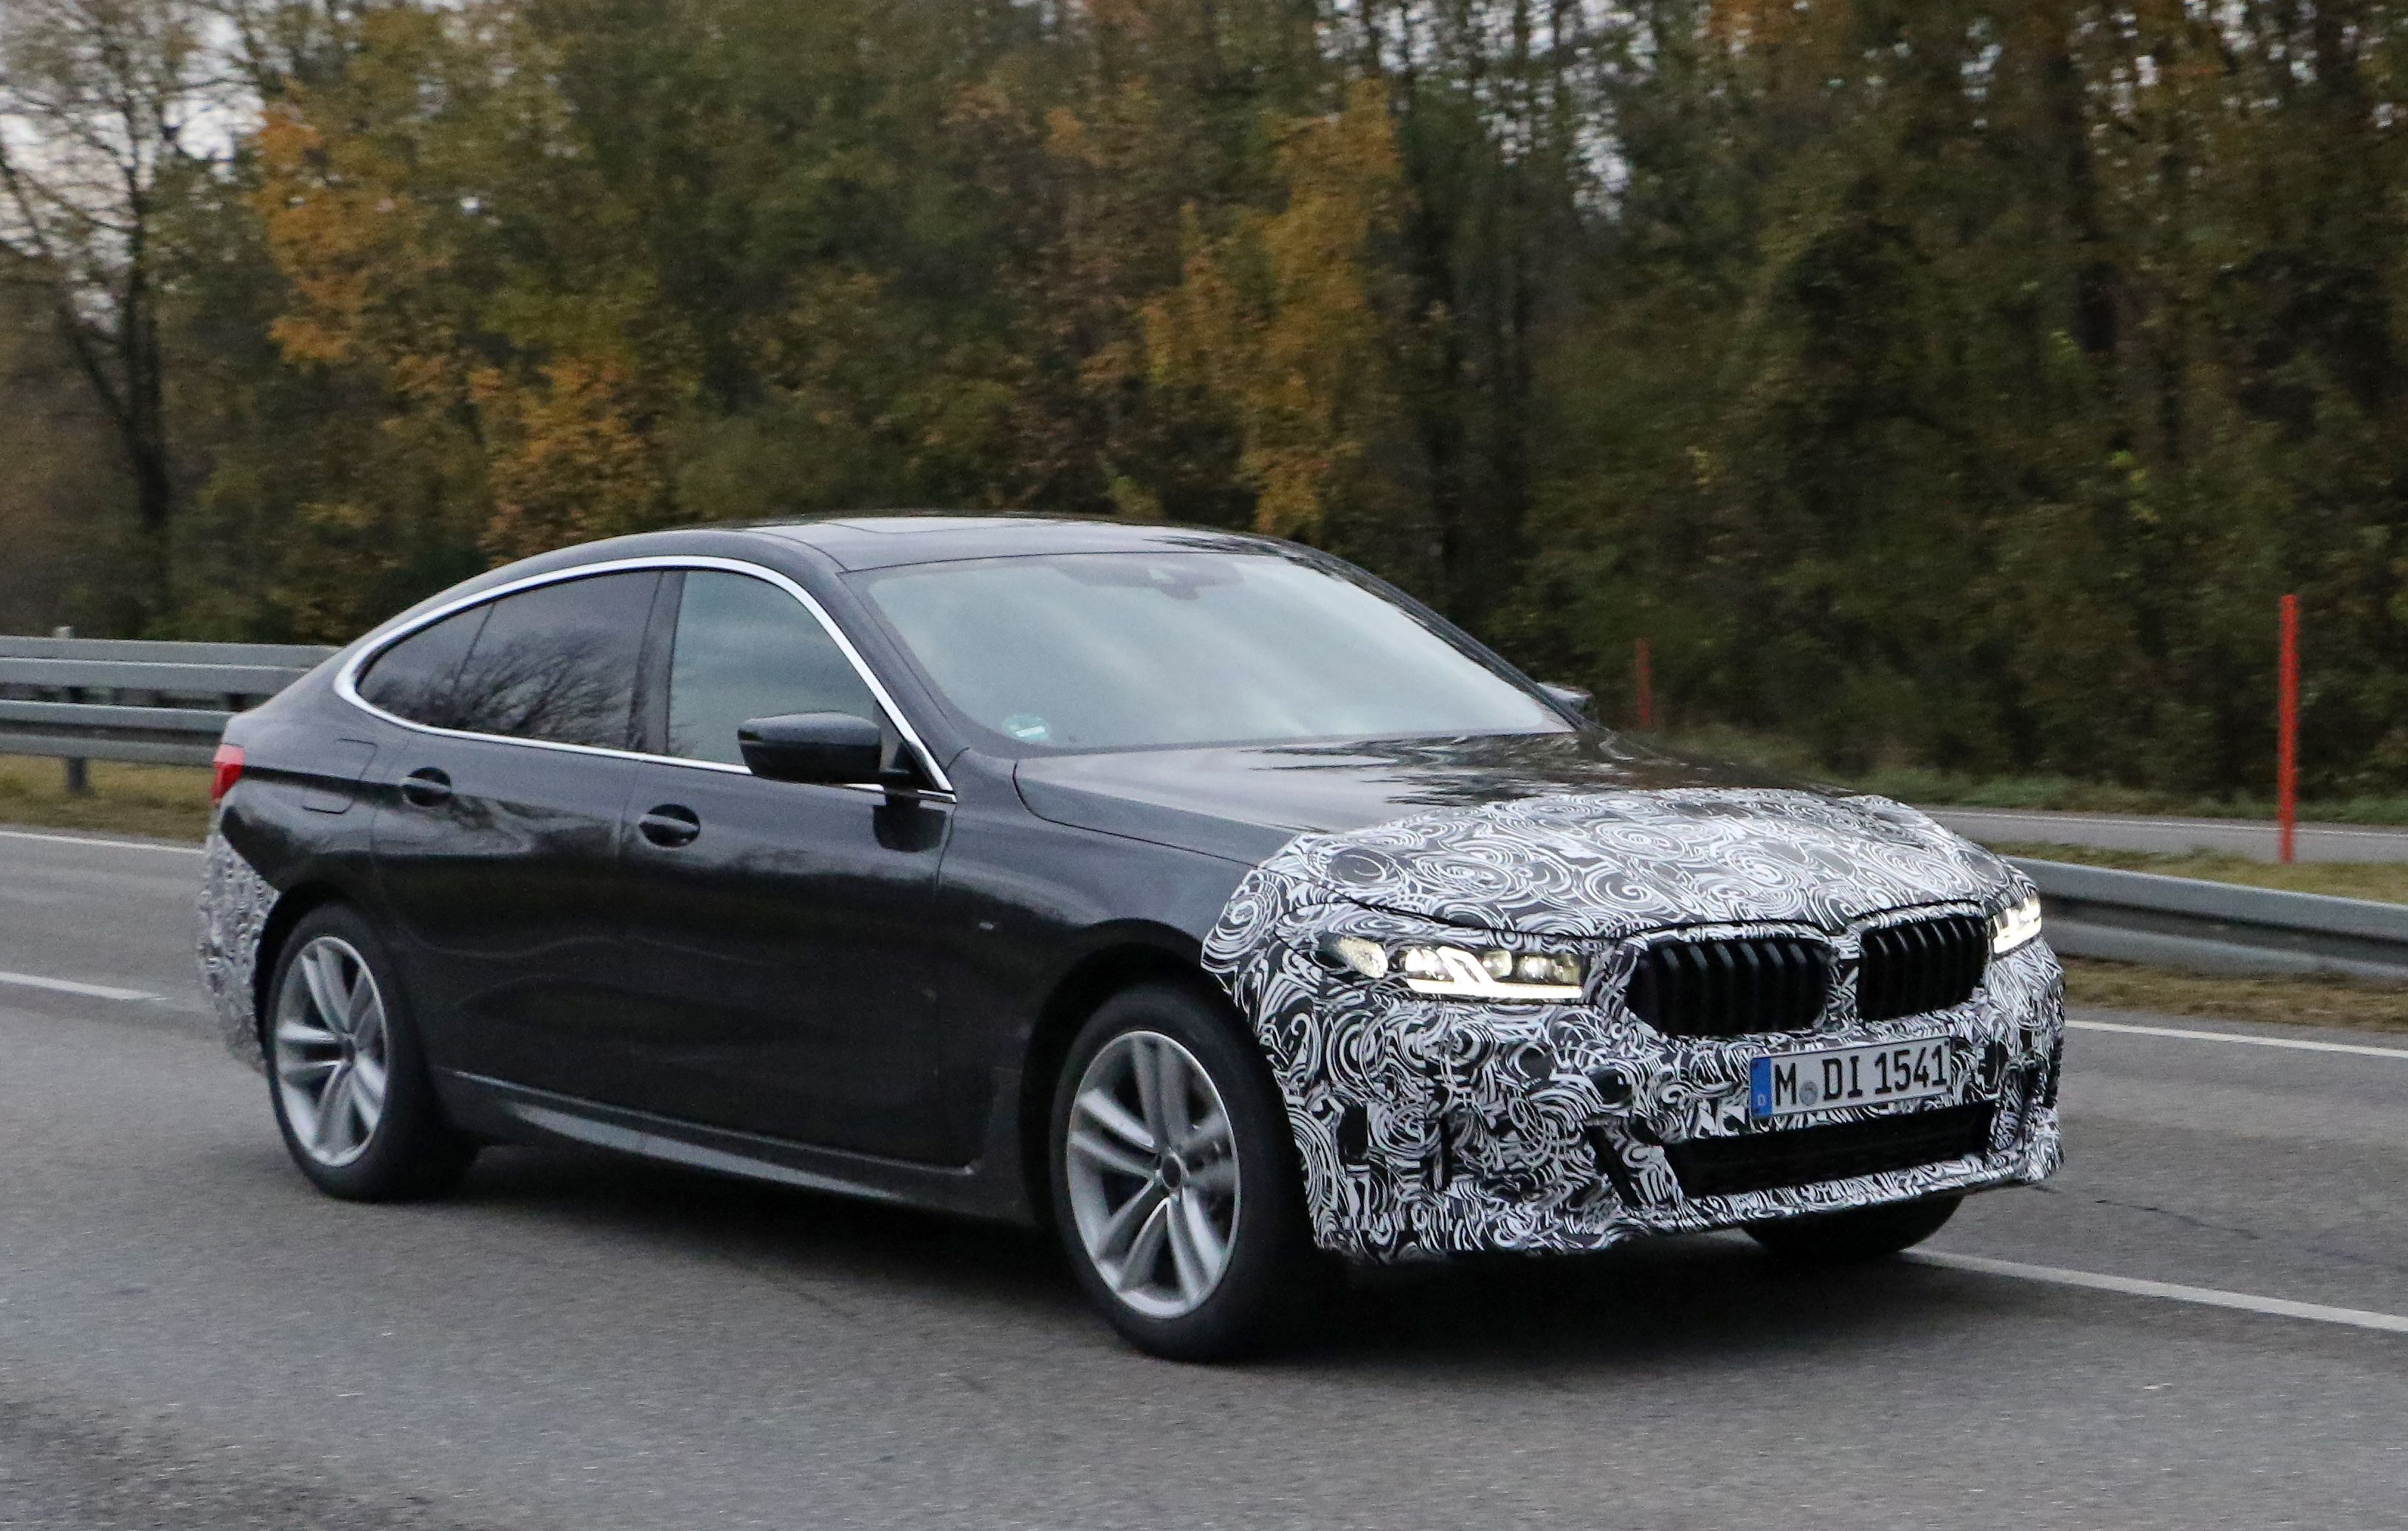 2021 Bmw 6 Series Gt Speculative Review And Spy Shots In 2020